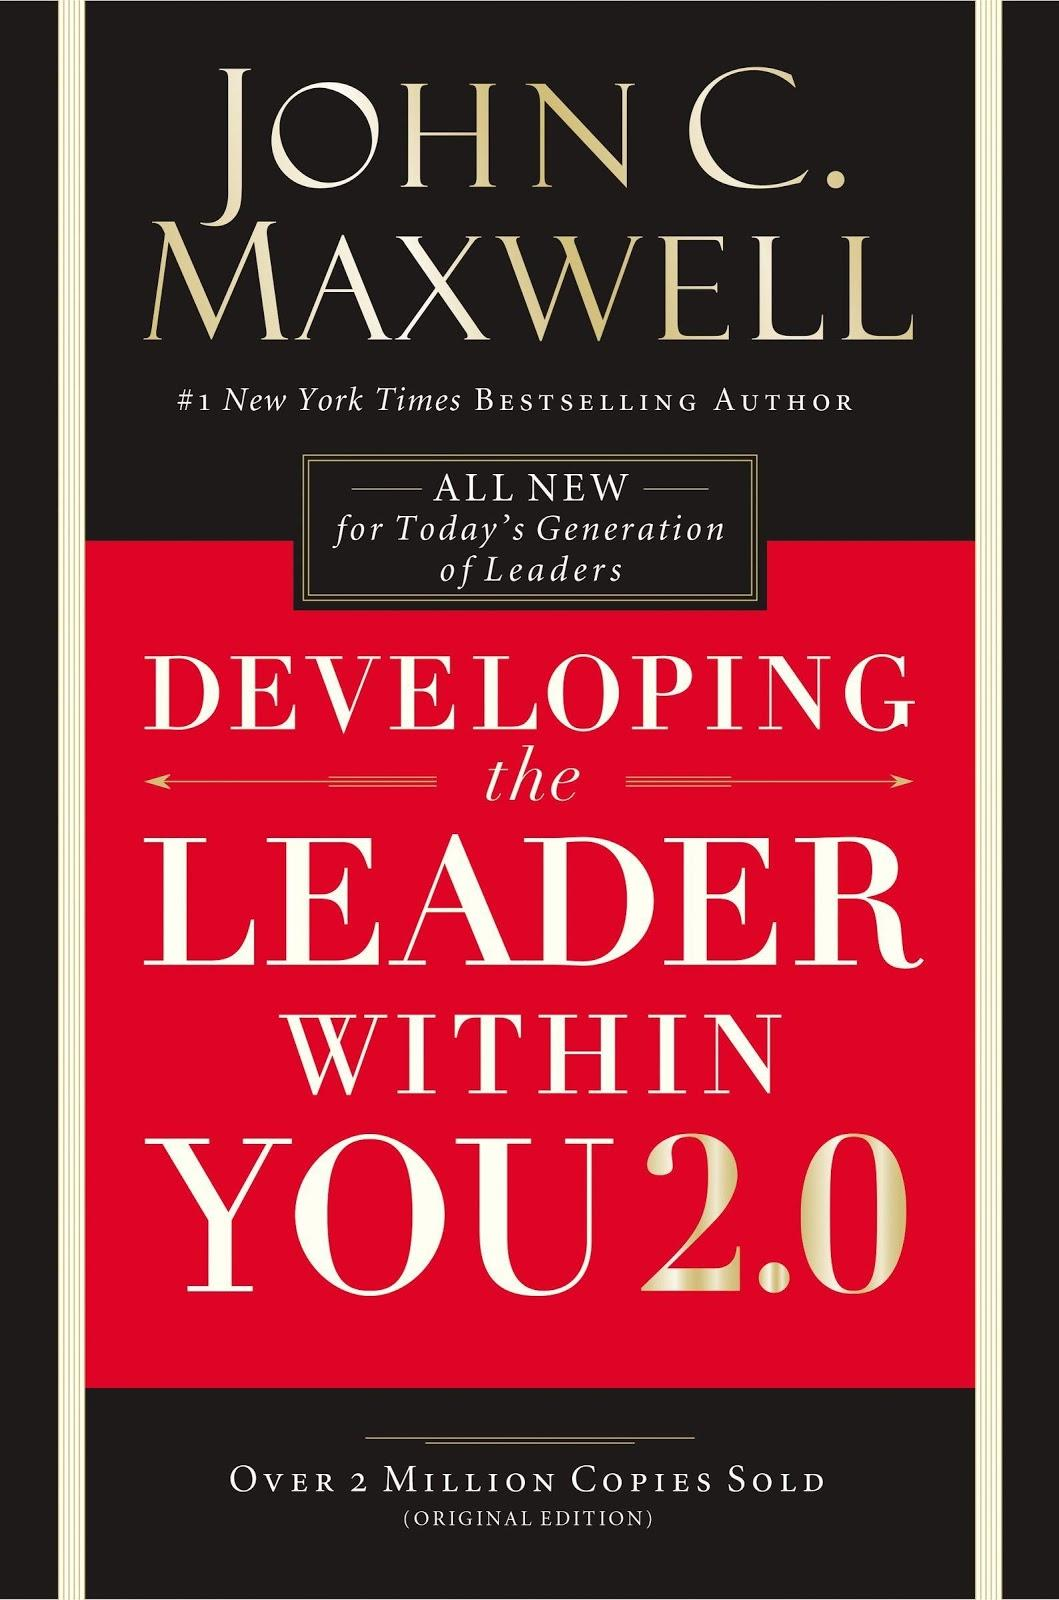 Livro Developing The Leader Within You 2.0